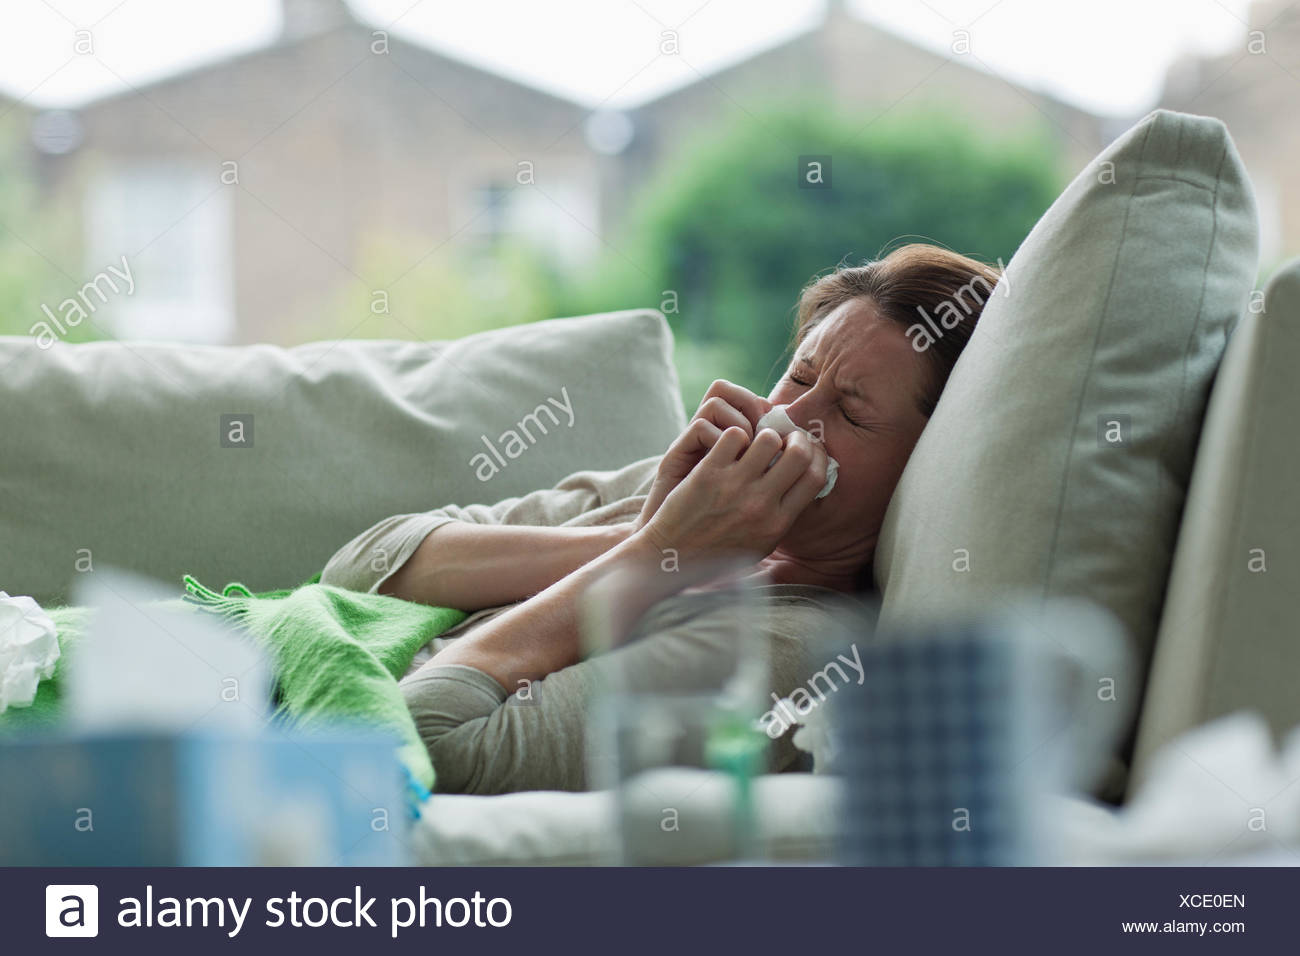 Sick woman laying on sofa blowing nose - Stock Image